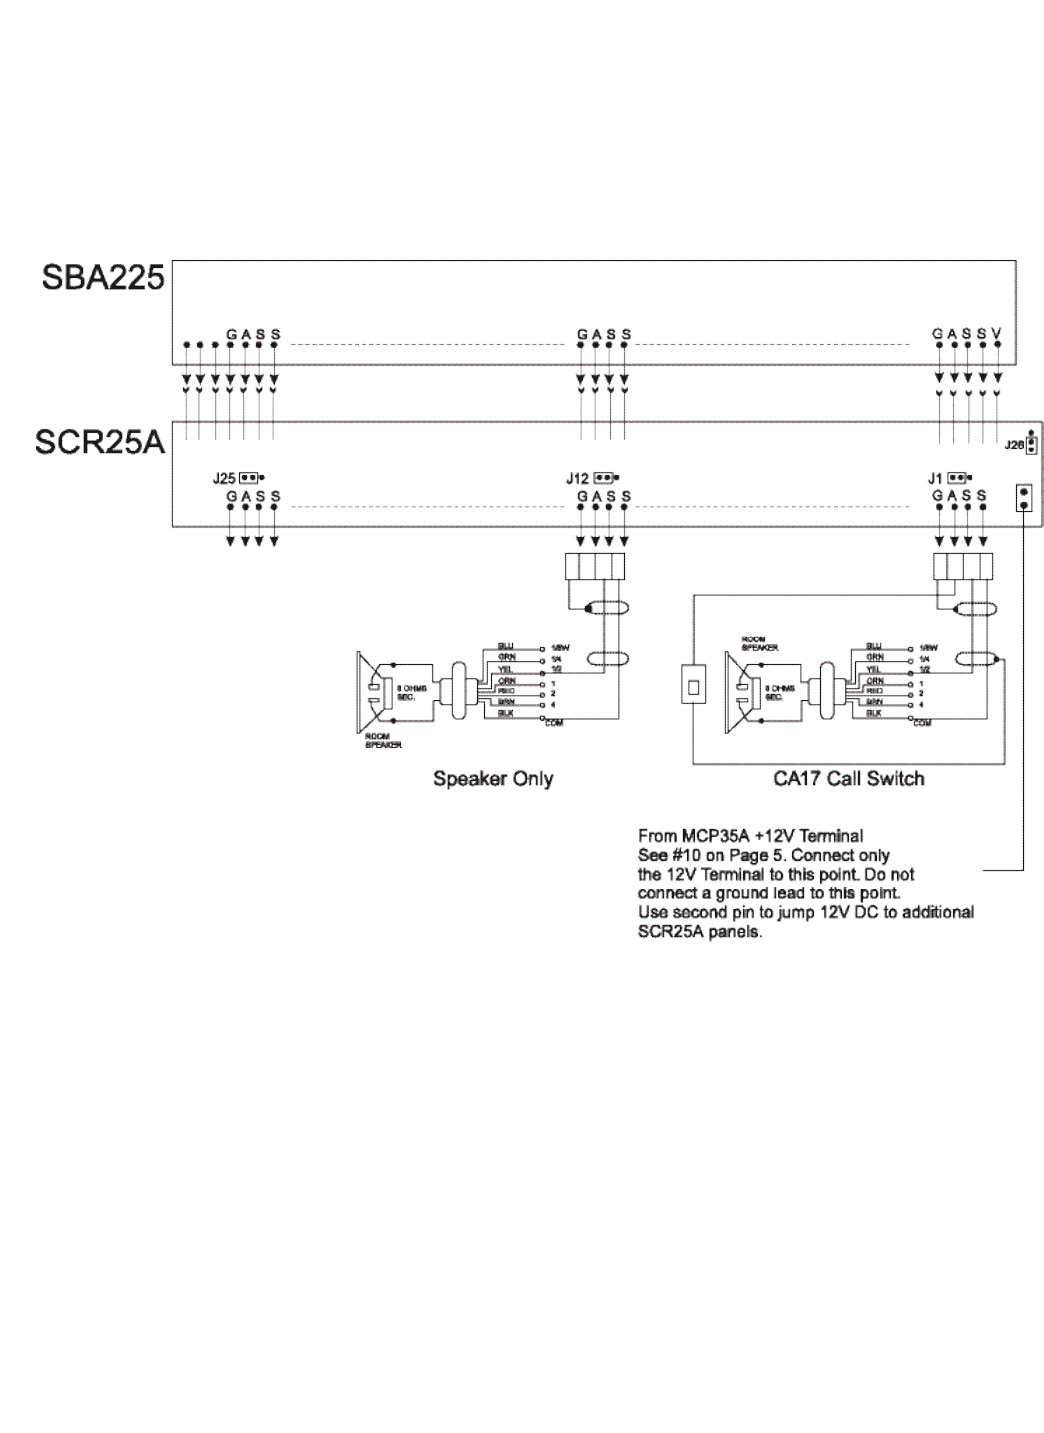 Ansul System Wiring Diagram Dolgularcom Midwest 60 Amp Disconnect ...